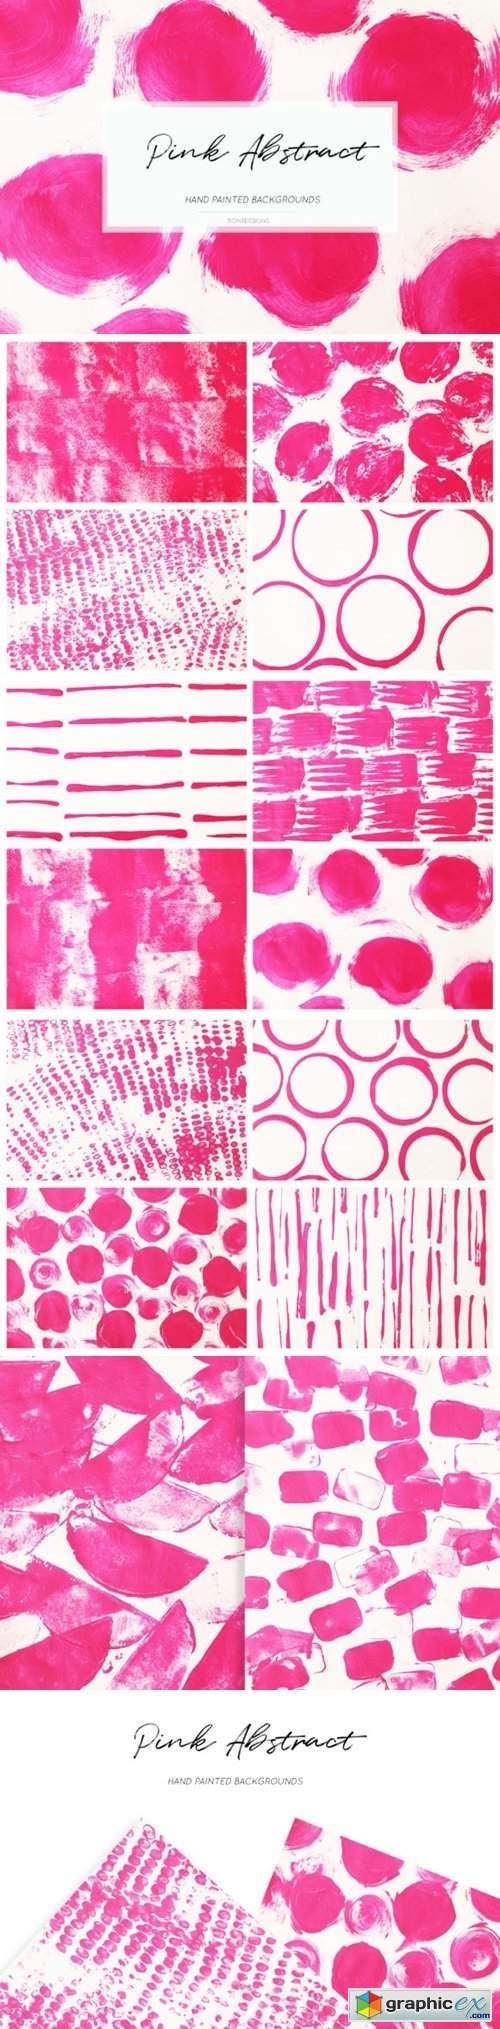 Pink Abstract Backgrounds